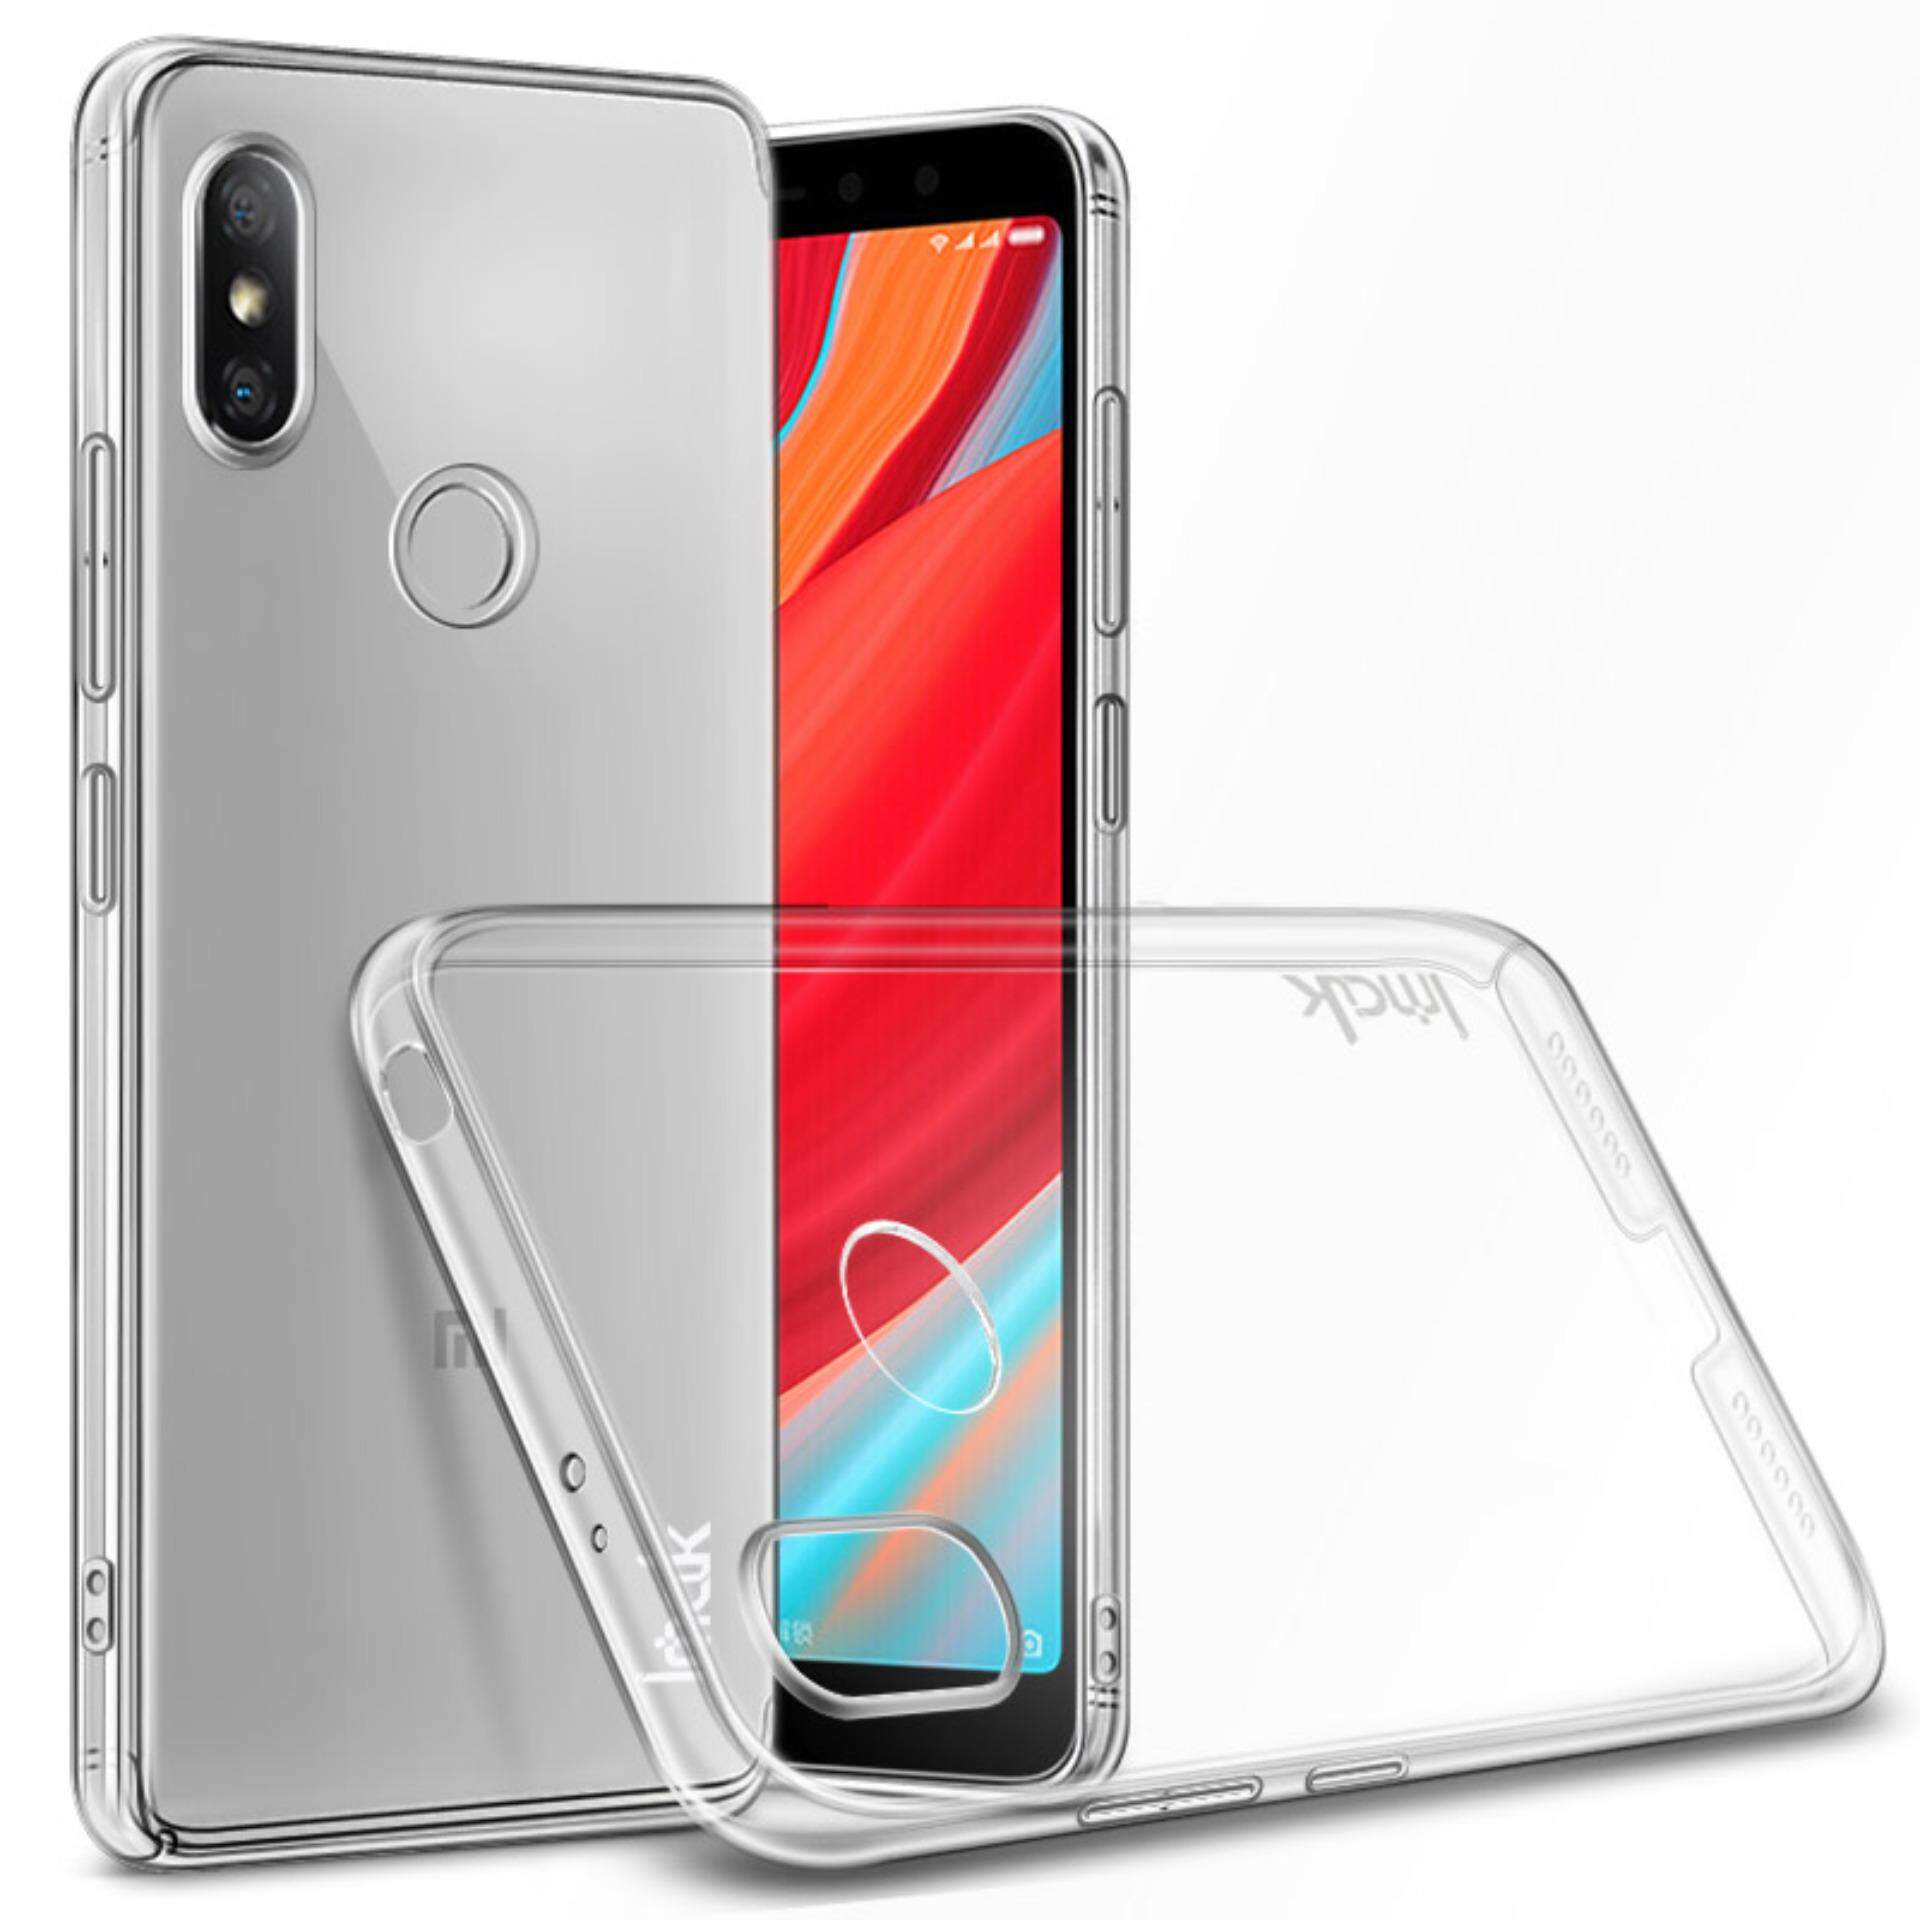 Buy Sell Cheapest Redmi S2 Pro Best Quality Product Deals Charger Casan Original Xiaomi Mi4i Mi 4 4i 4a 4x Prime Note Y2 Case With Screen Protector Imak Crystal Ii Transparent Ultra Thin Surrounded Full Protection Abrasion Resistant Dustproof Nature